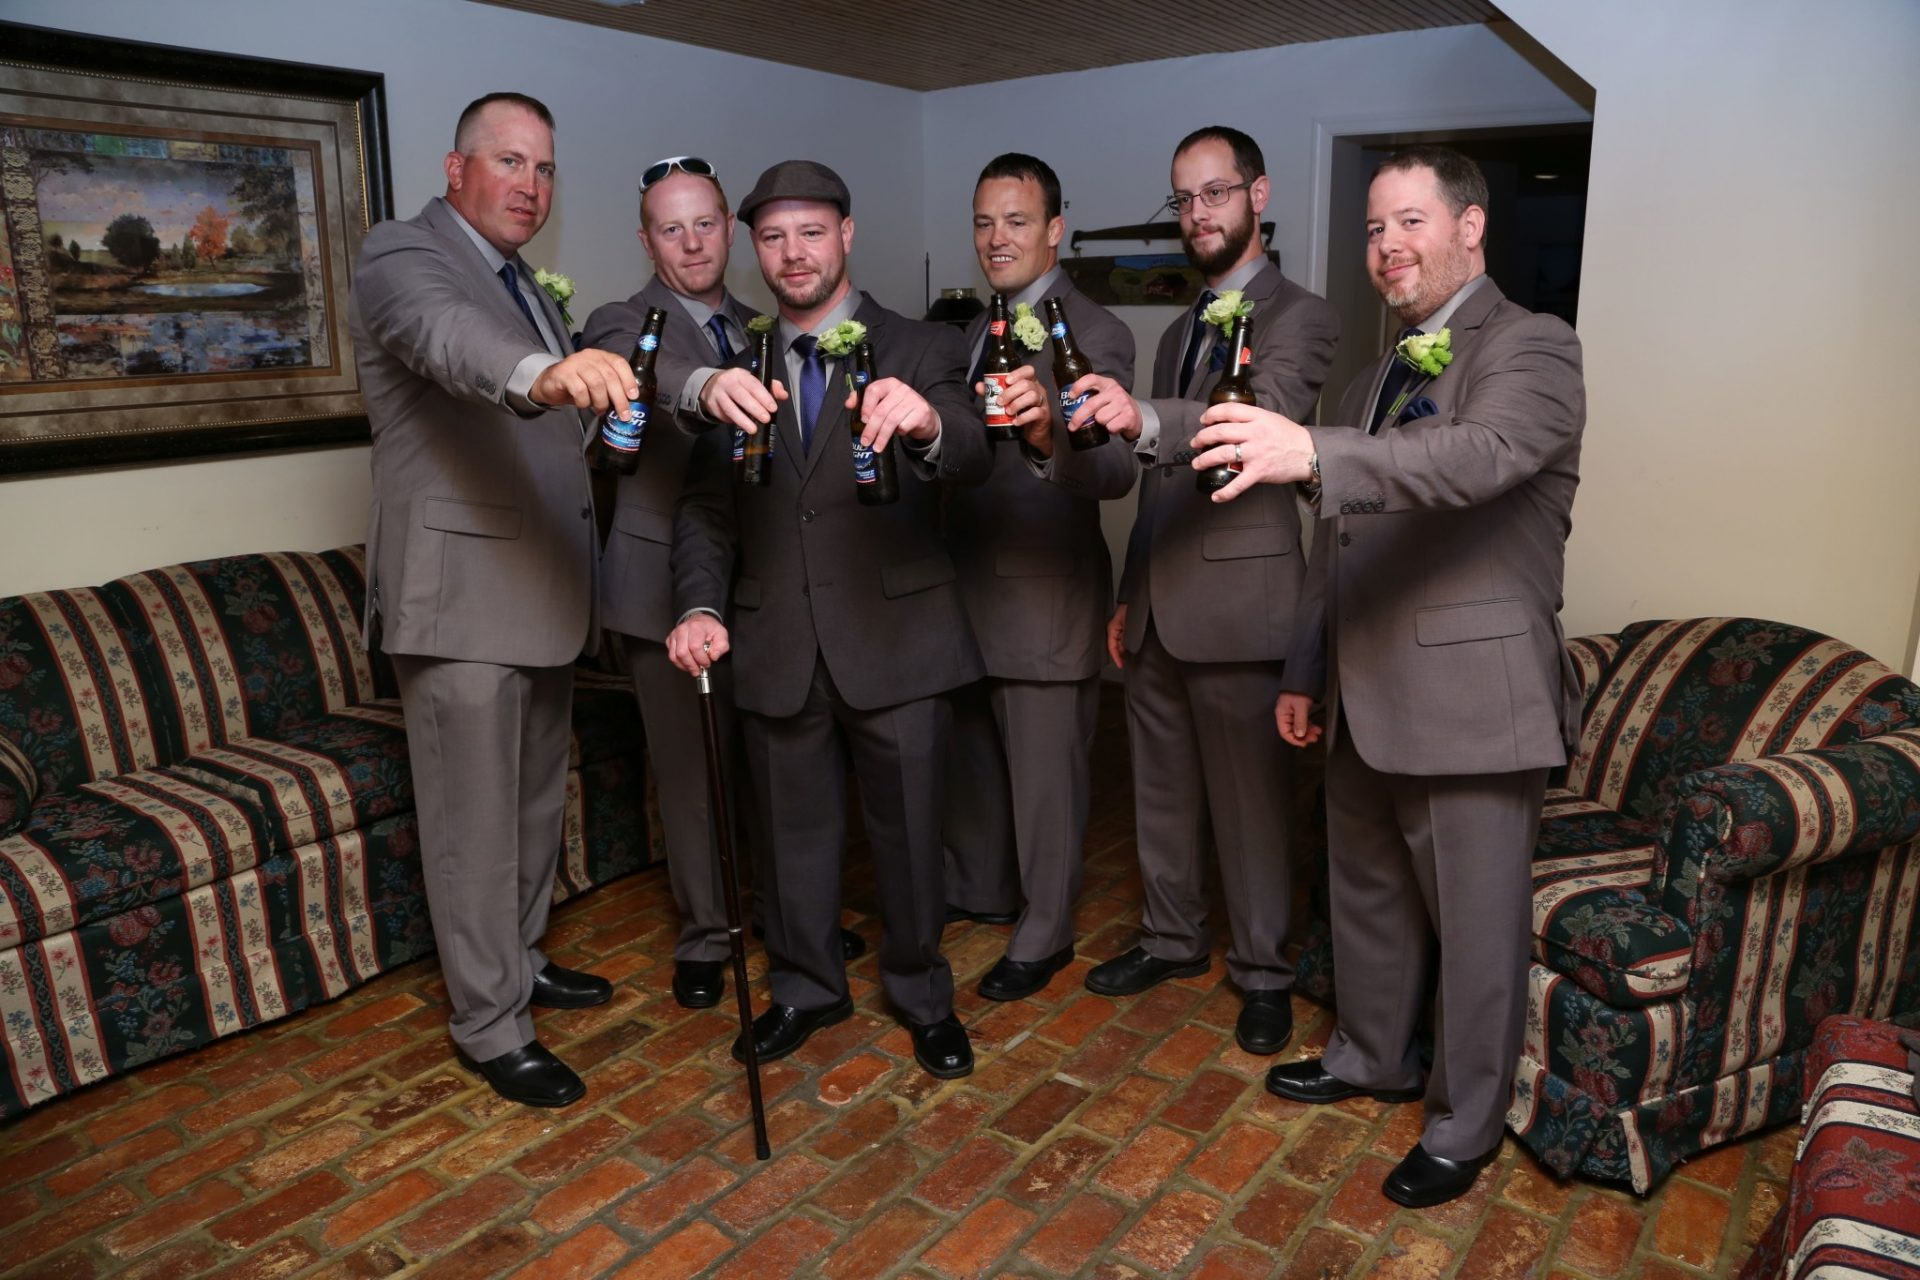 Celebrating in the groom's room before Maryland wedding